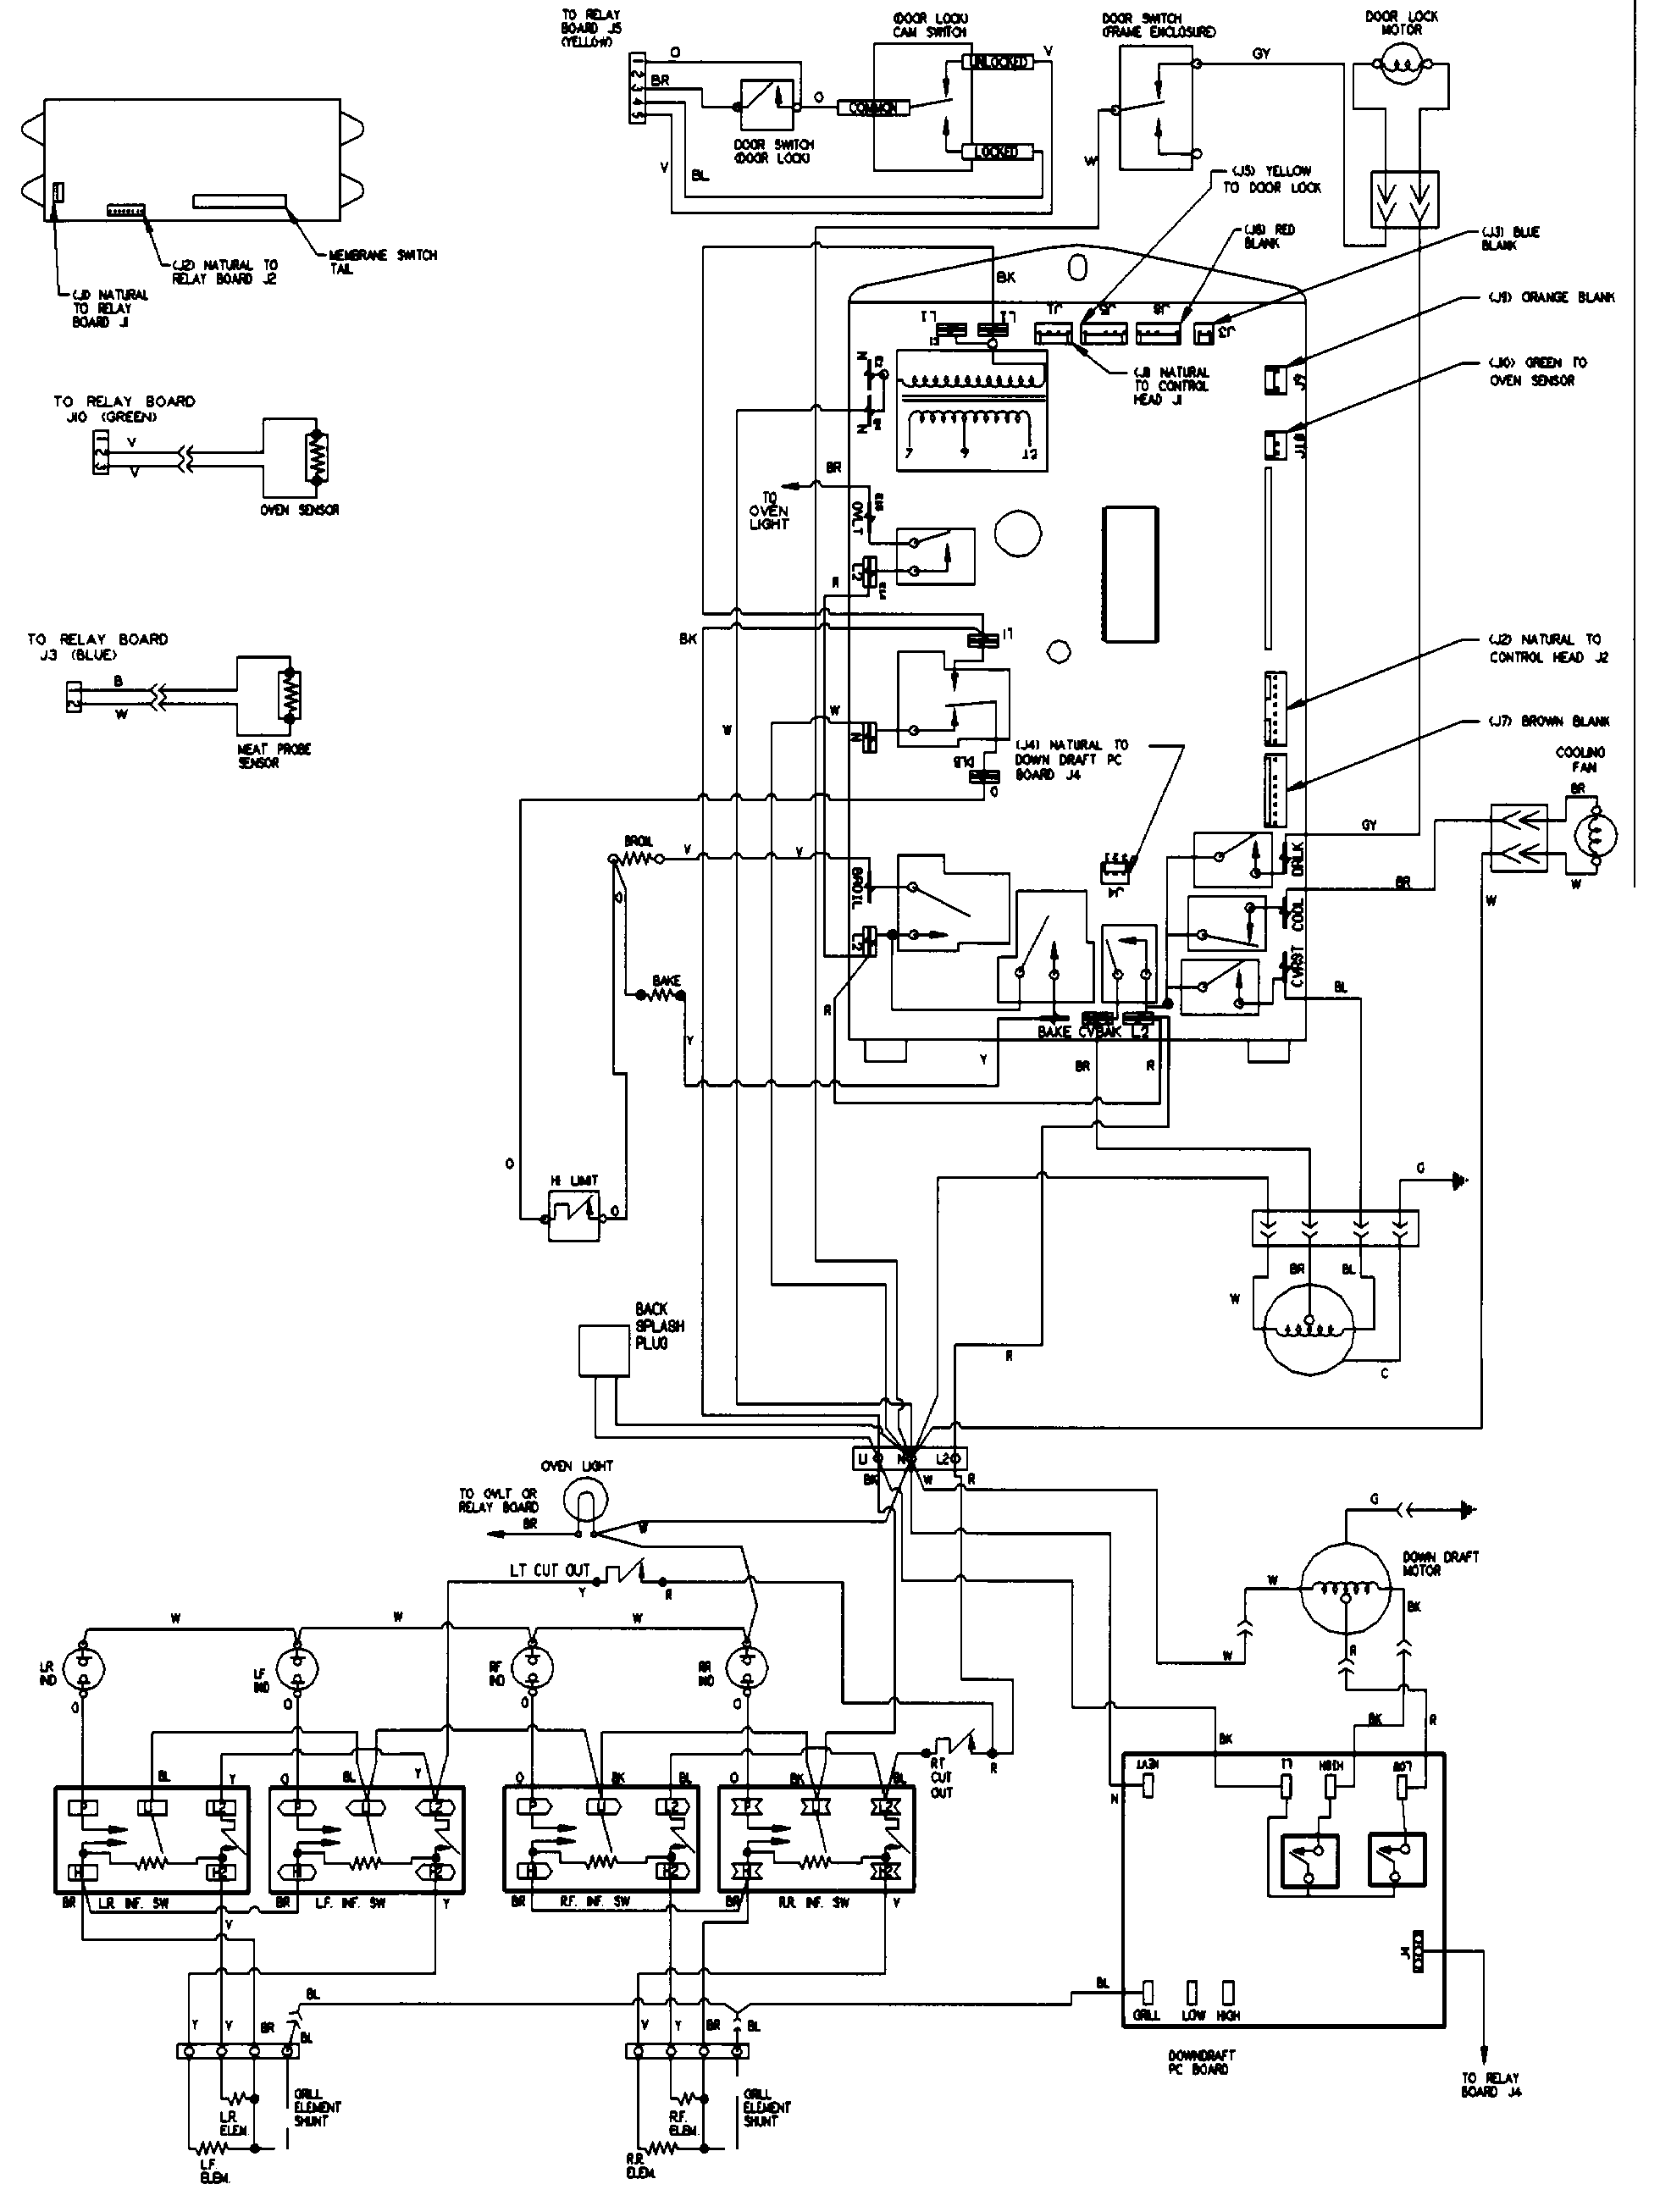 7 3 Ipr Wiring Diagram